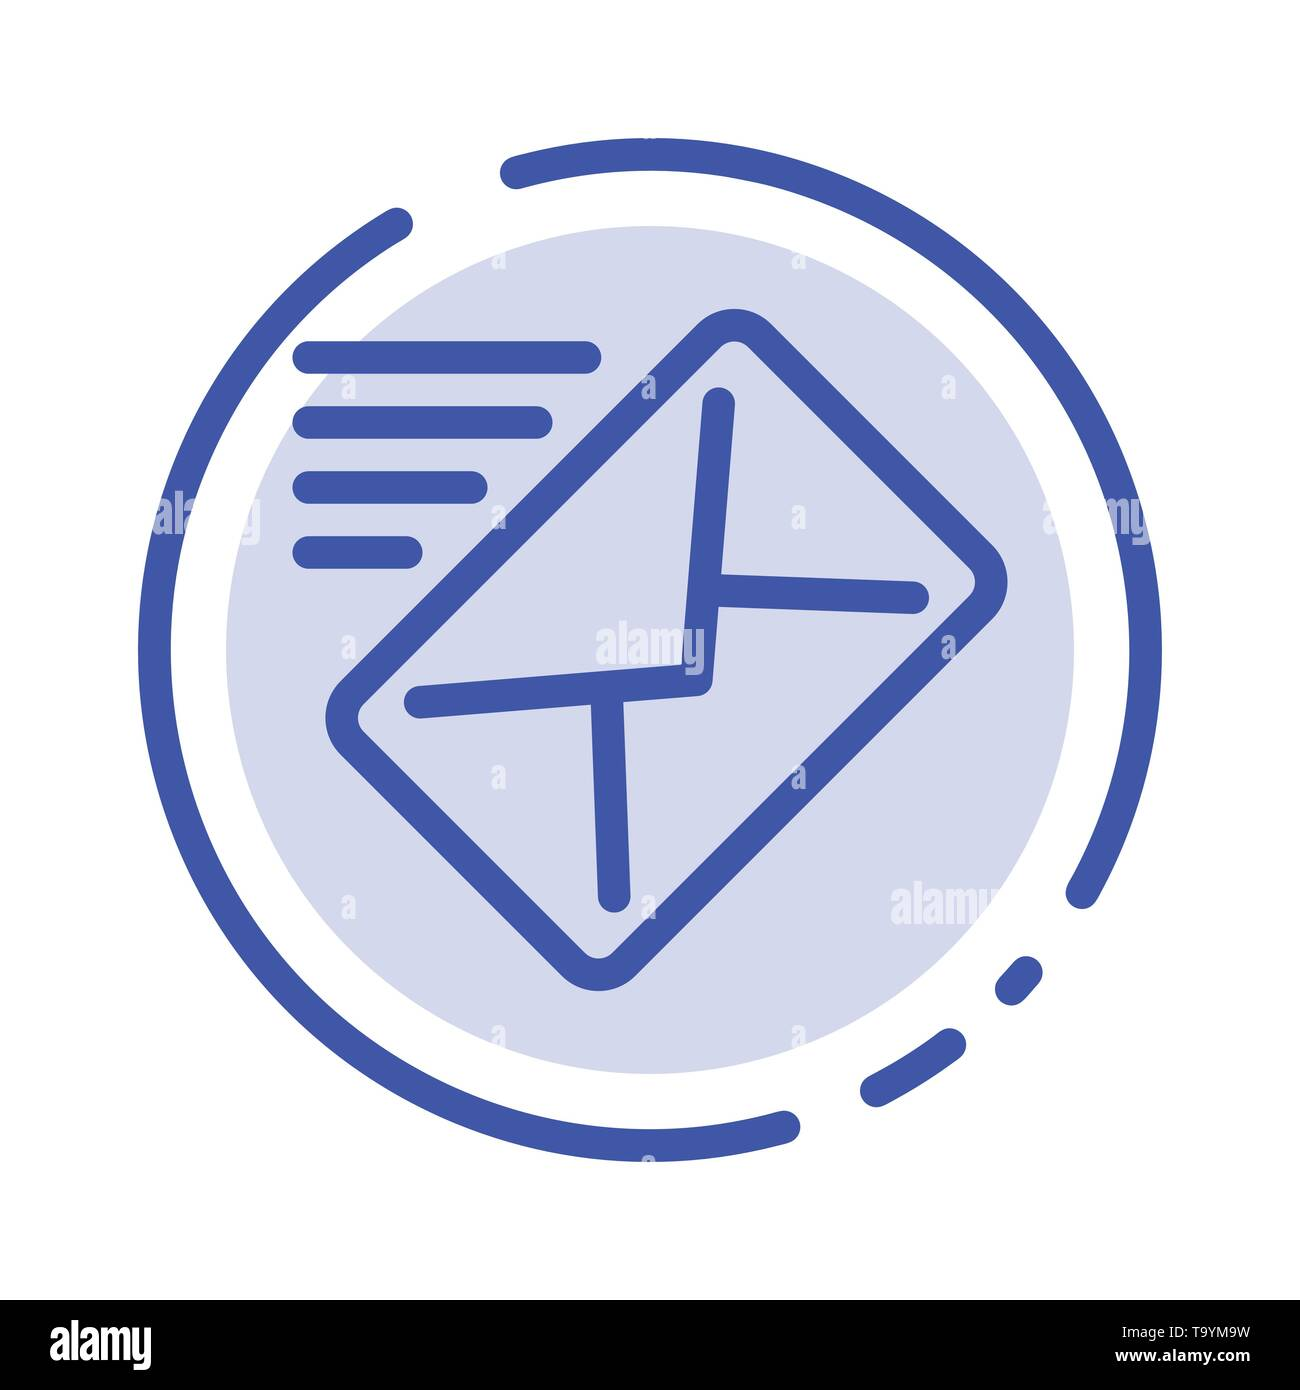 Email, Mail, Message, Sent Blue Dotted Line Line Icon - Stock Image